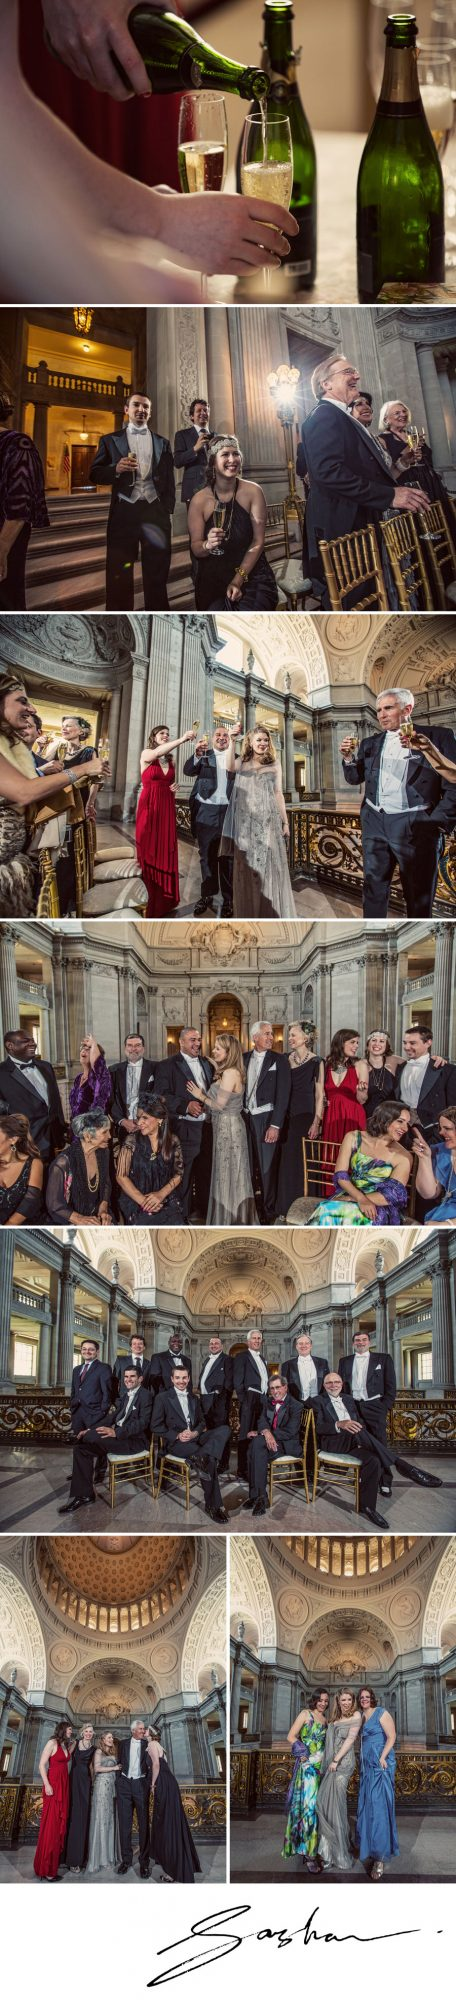 san francisco city hall mayor's balcony wedding